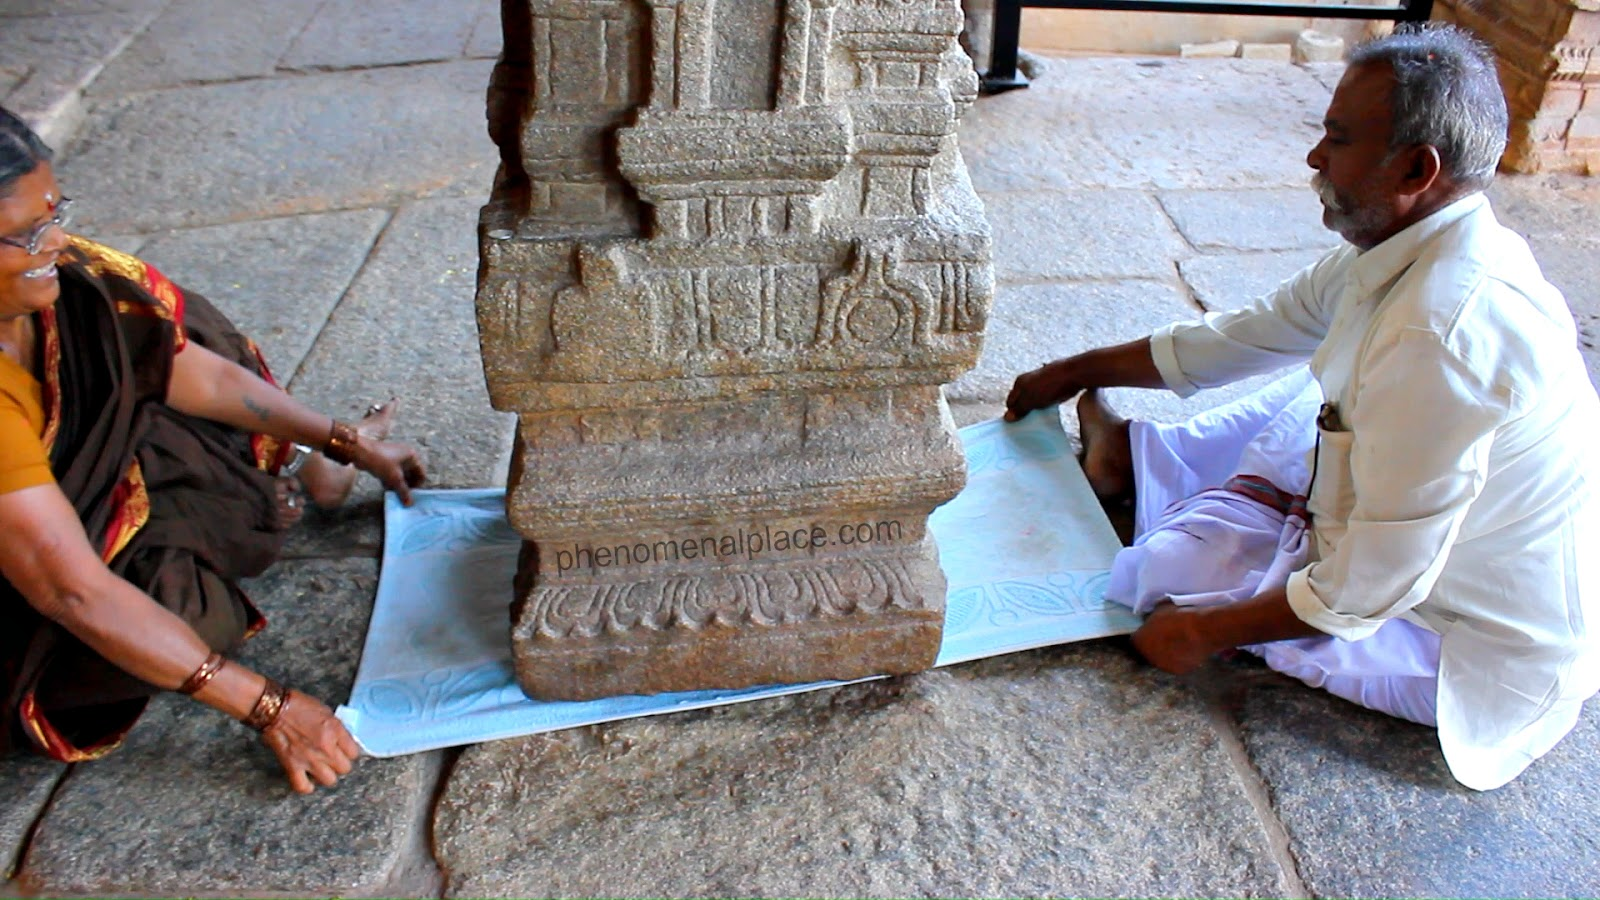 Hanging_Pillar_Lepakshi_Temple_India_Wonder_Antigravity_Levitation_Proof.jpg